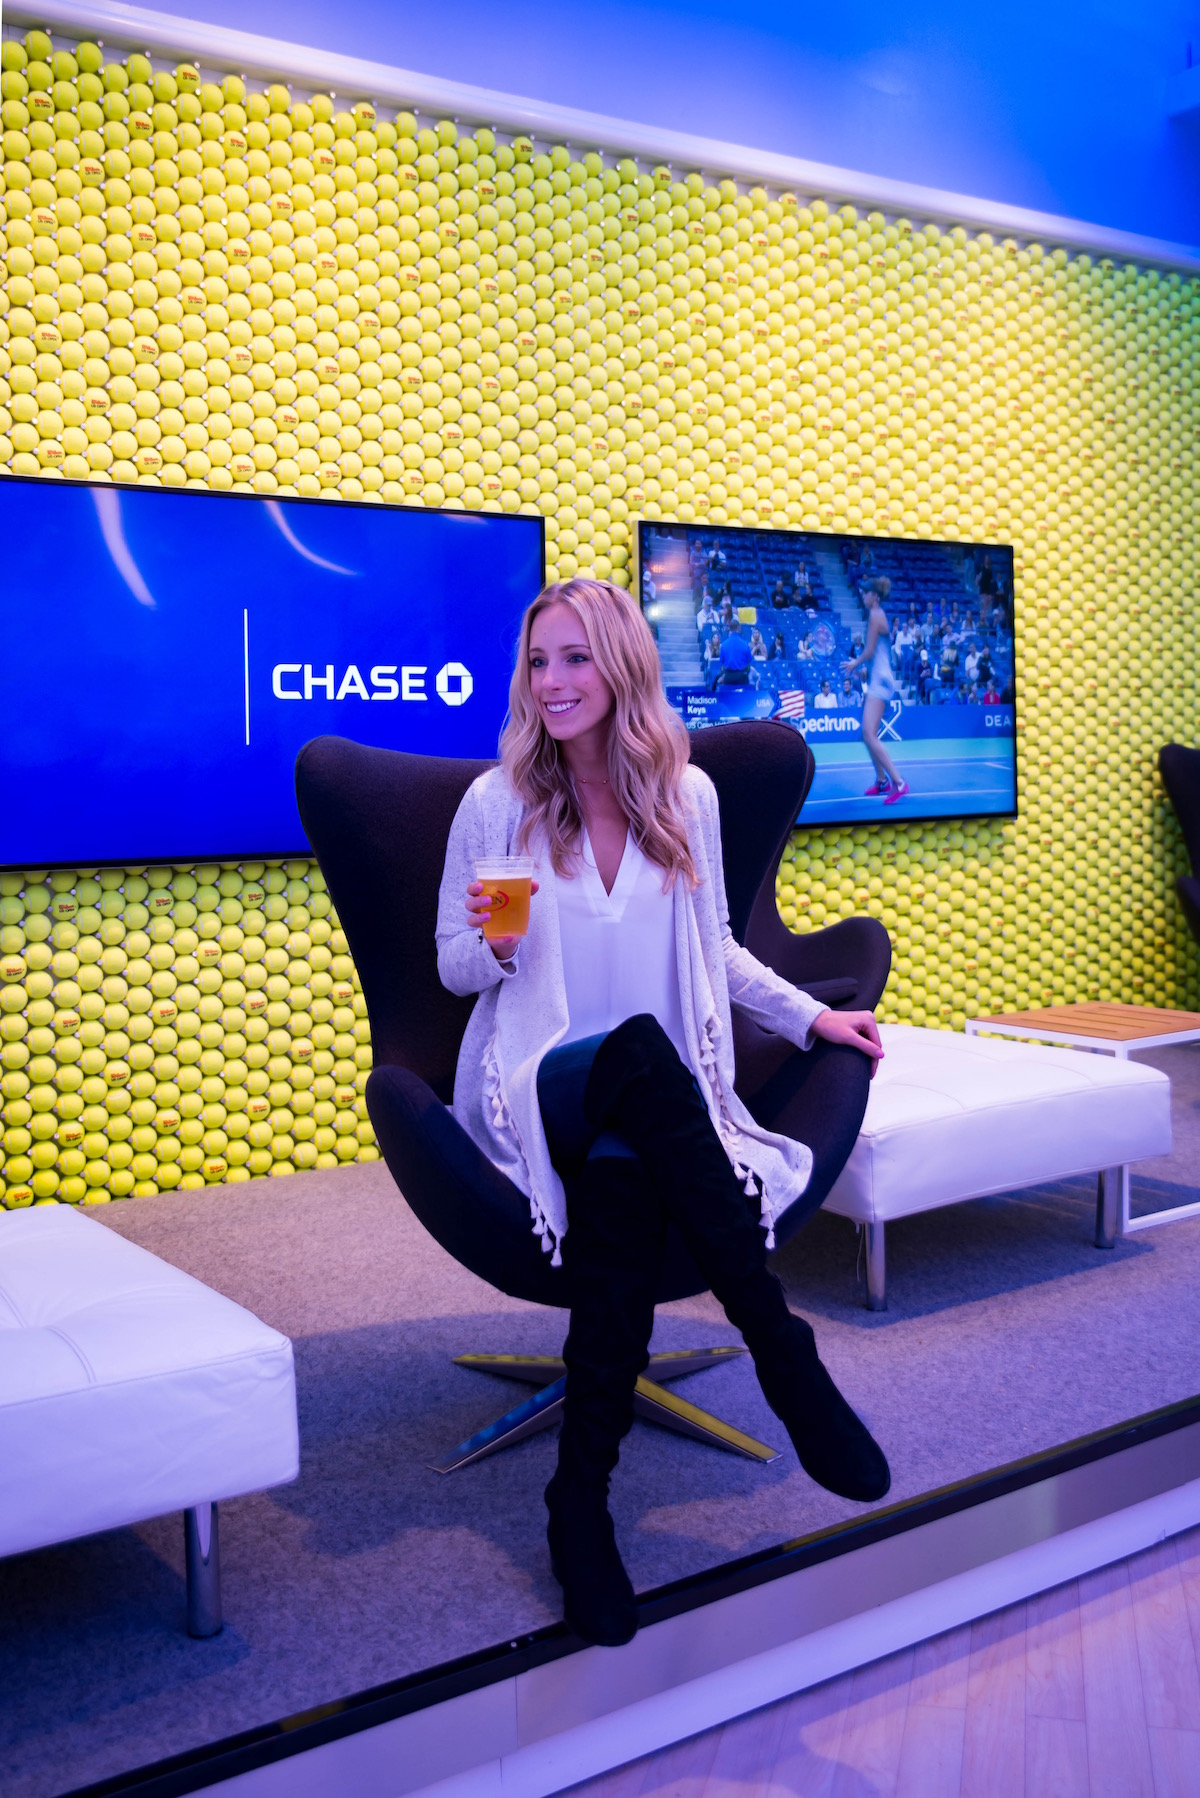 Chase Lounge US Open 2017